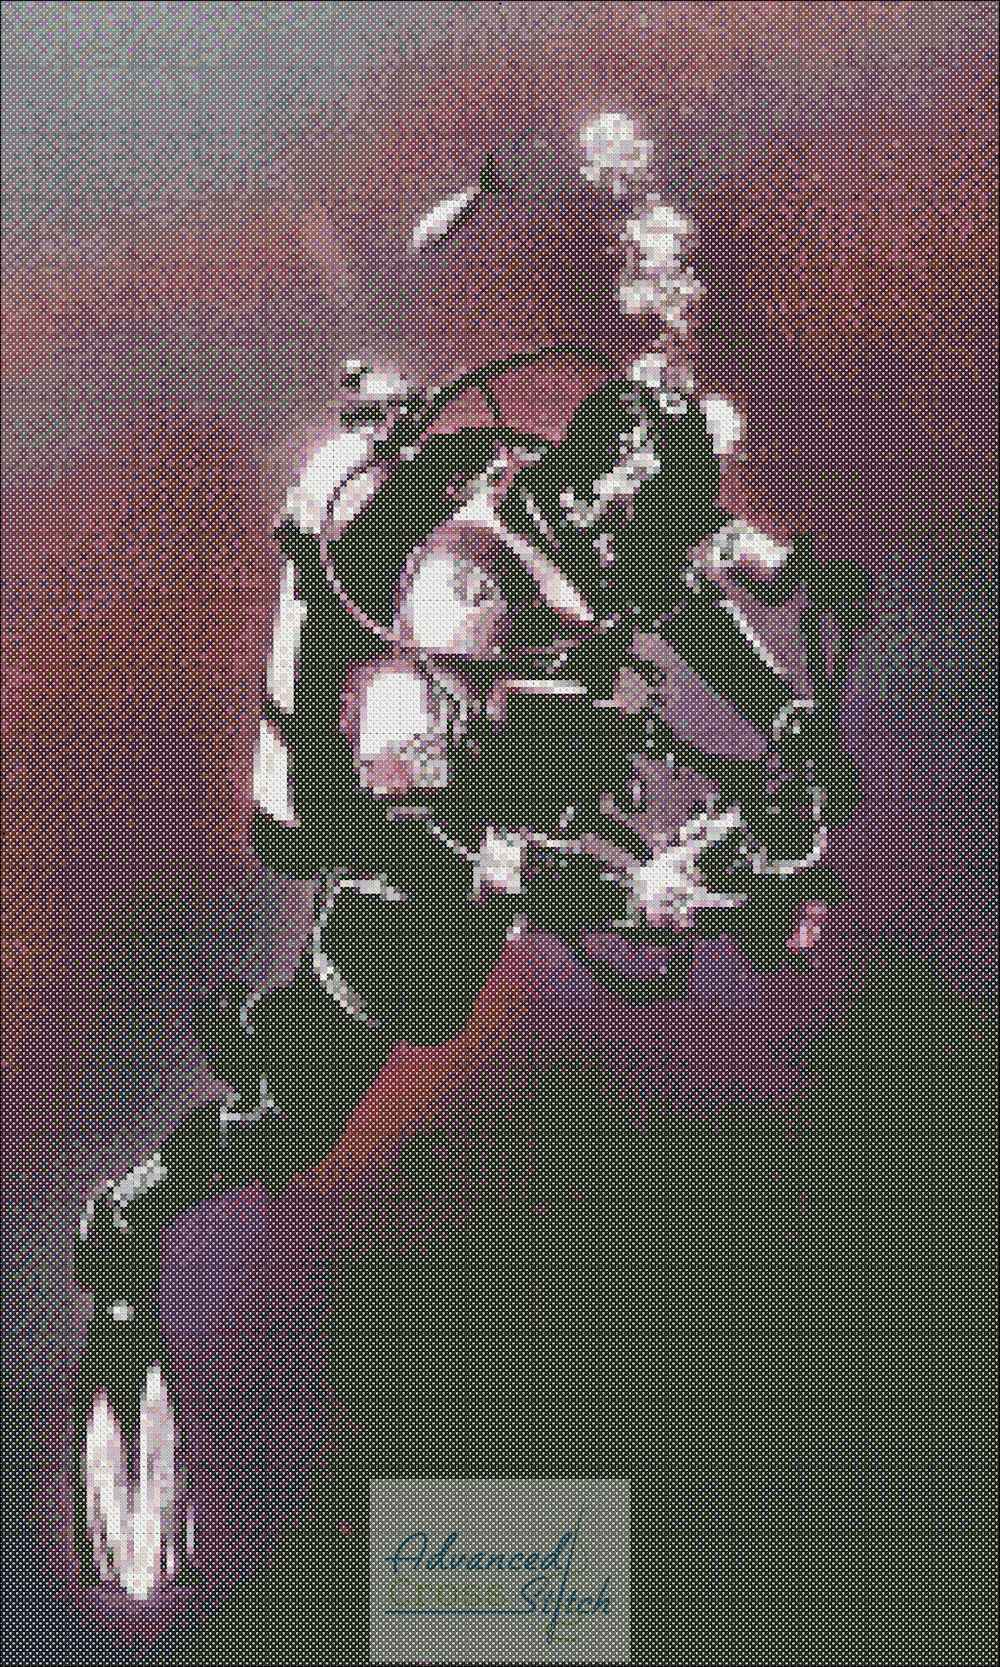 Scuba Cross Stitch Pattern